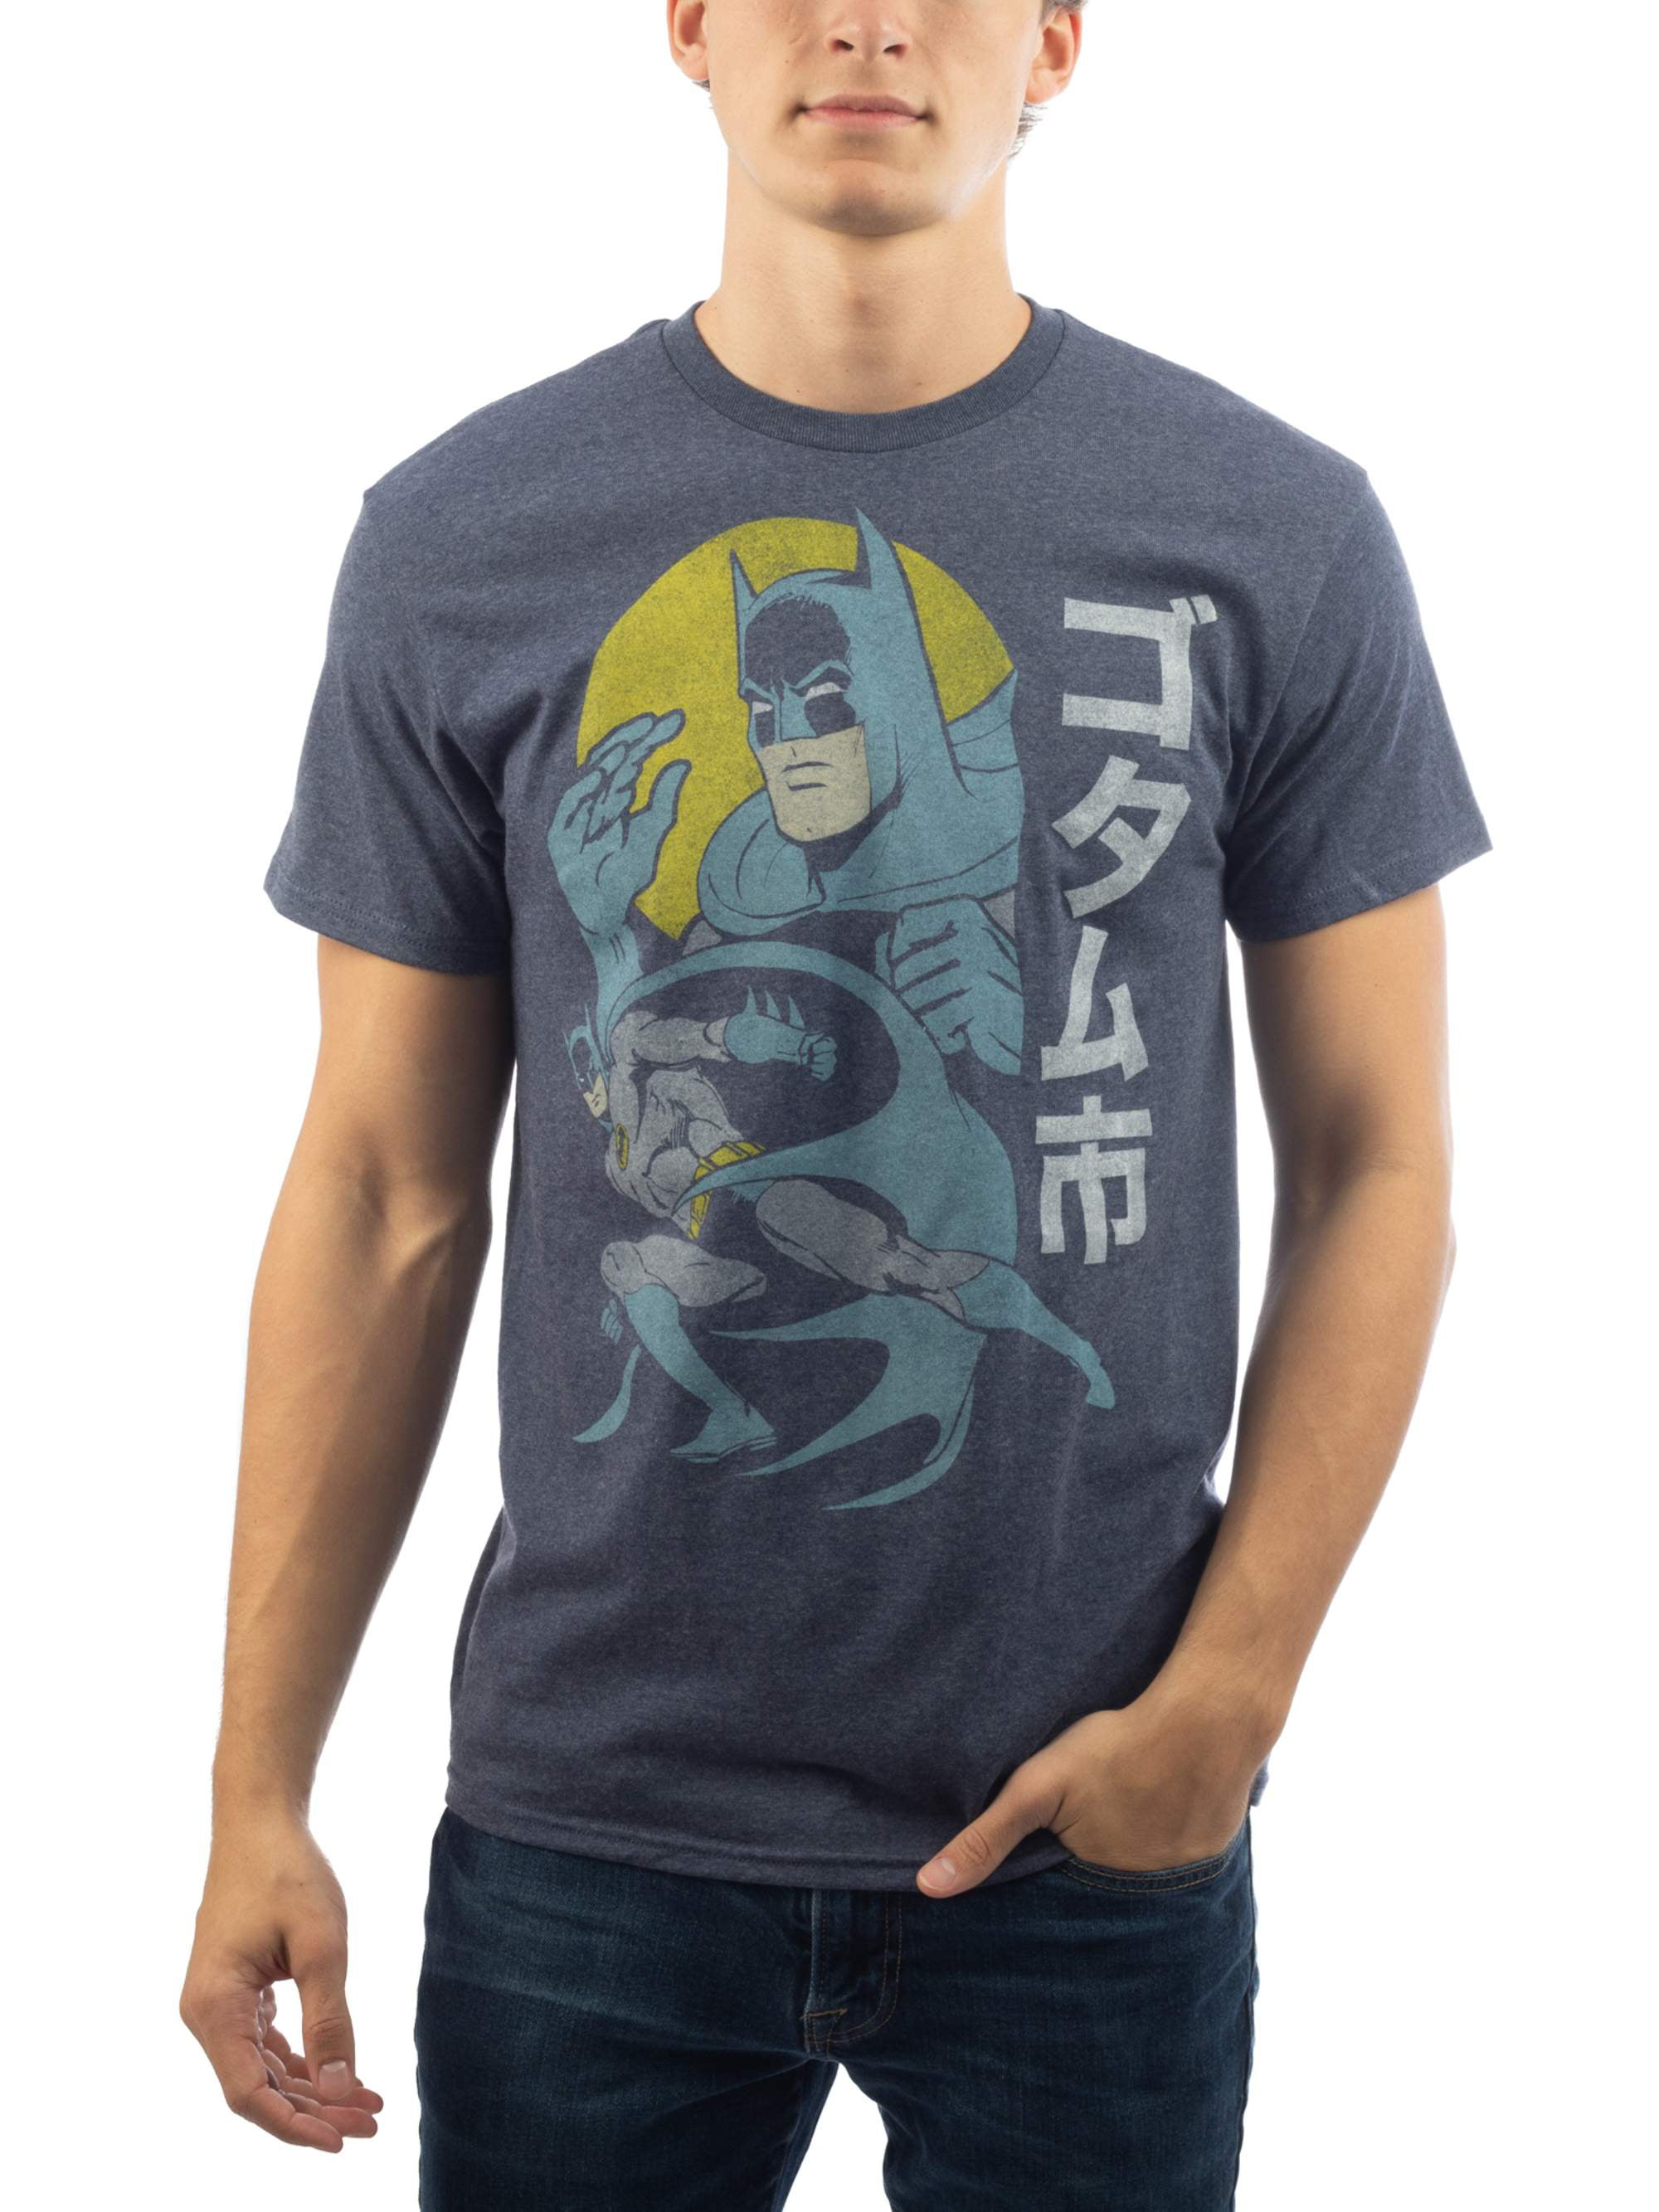 Batman TRUST ME I GOT THIS Loose Fit Tag-Free Active Wear Officially Licensed DC